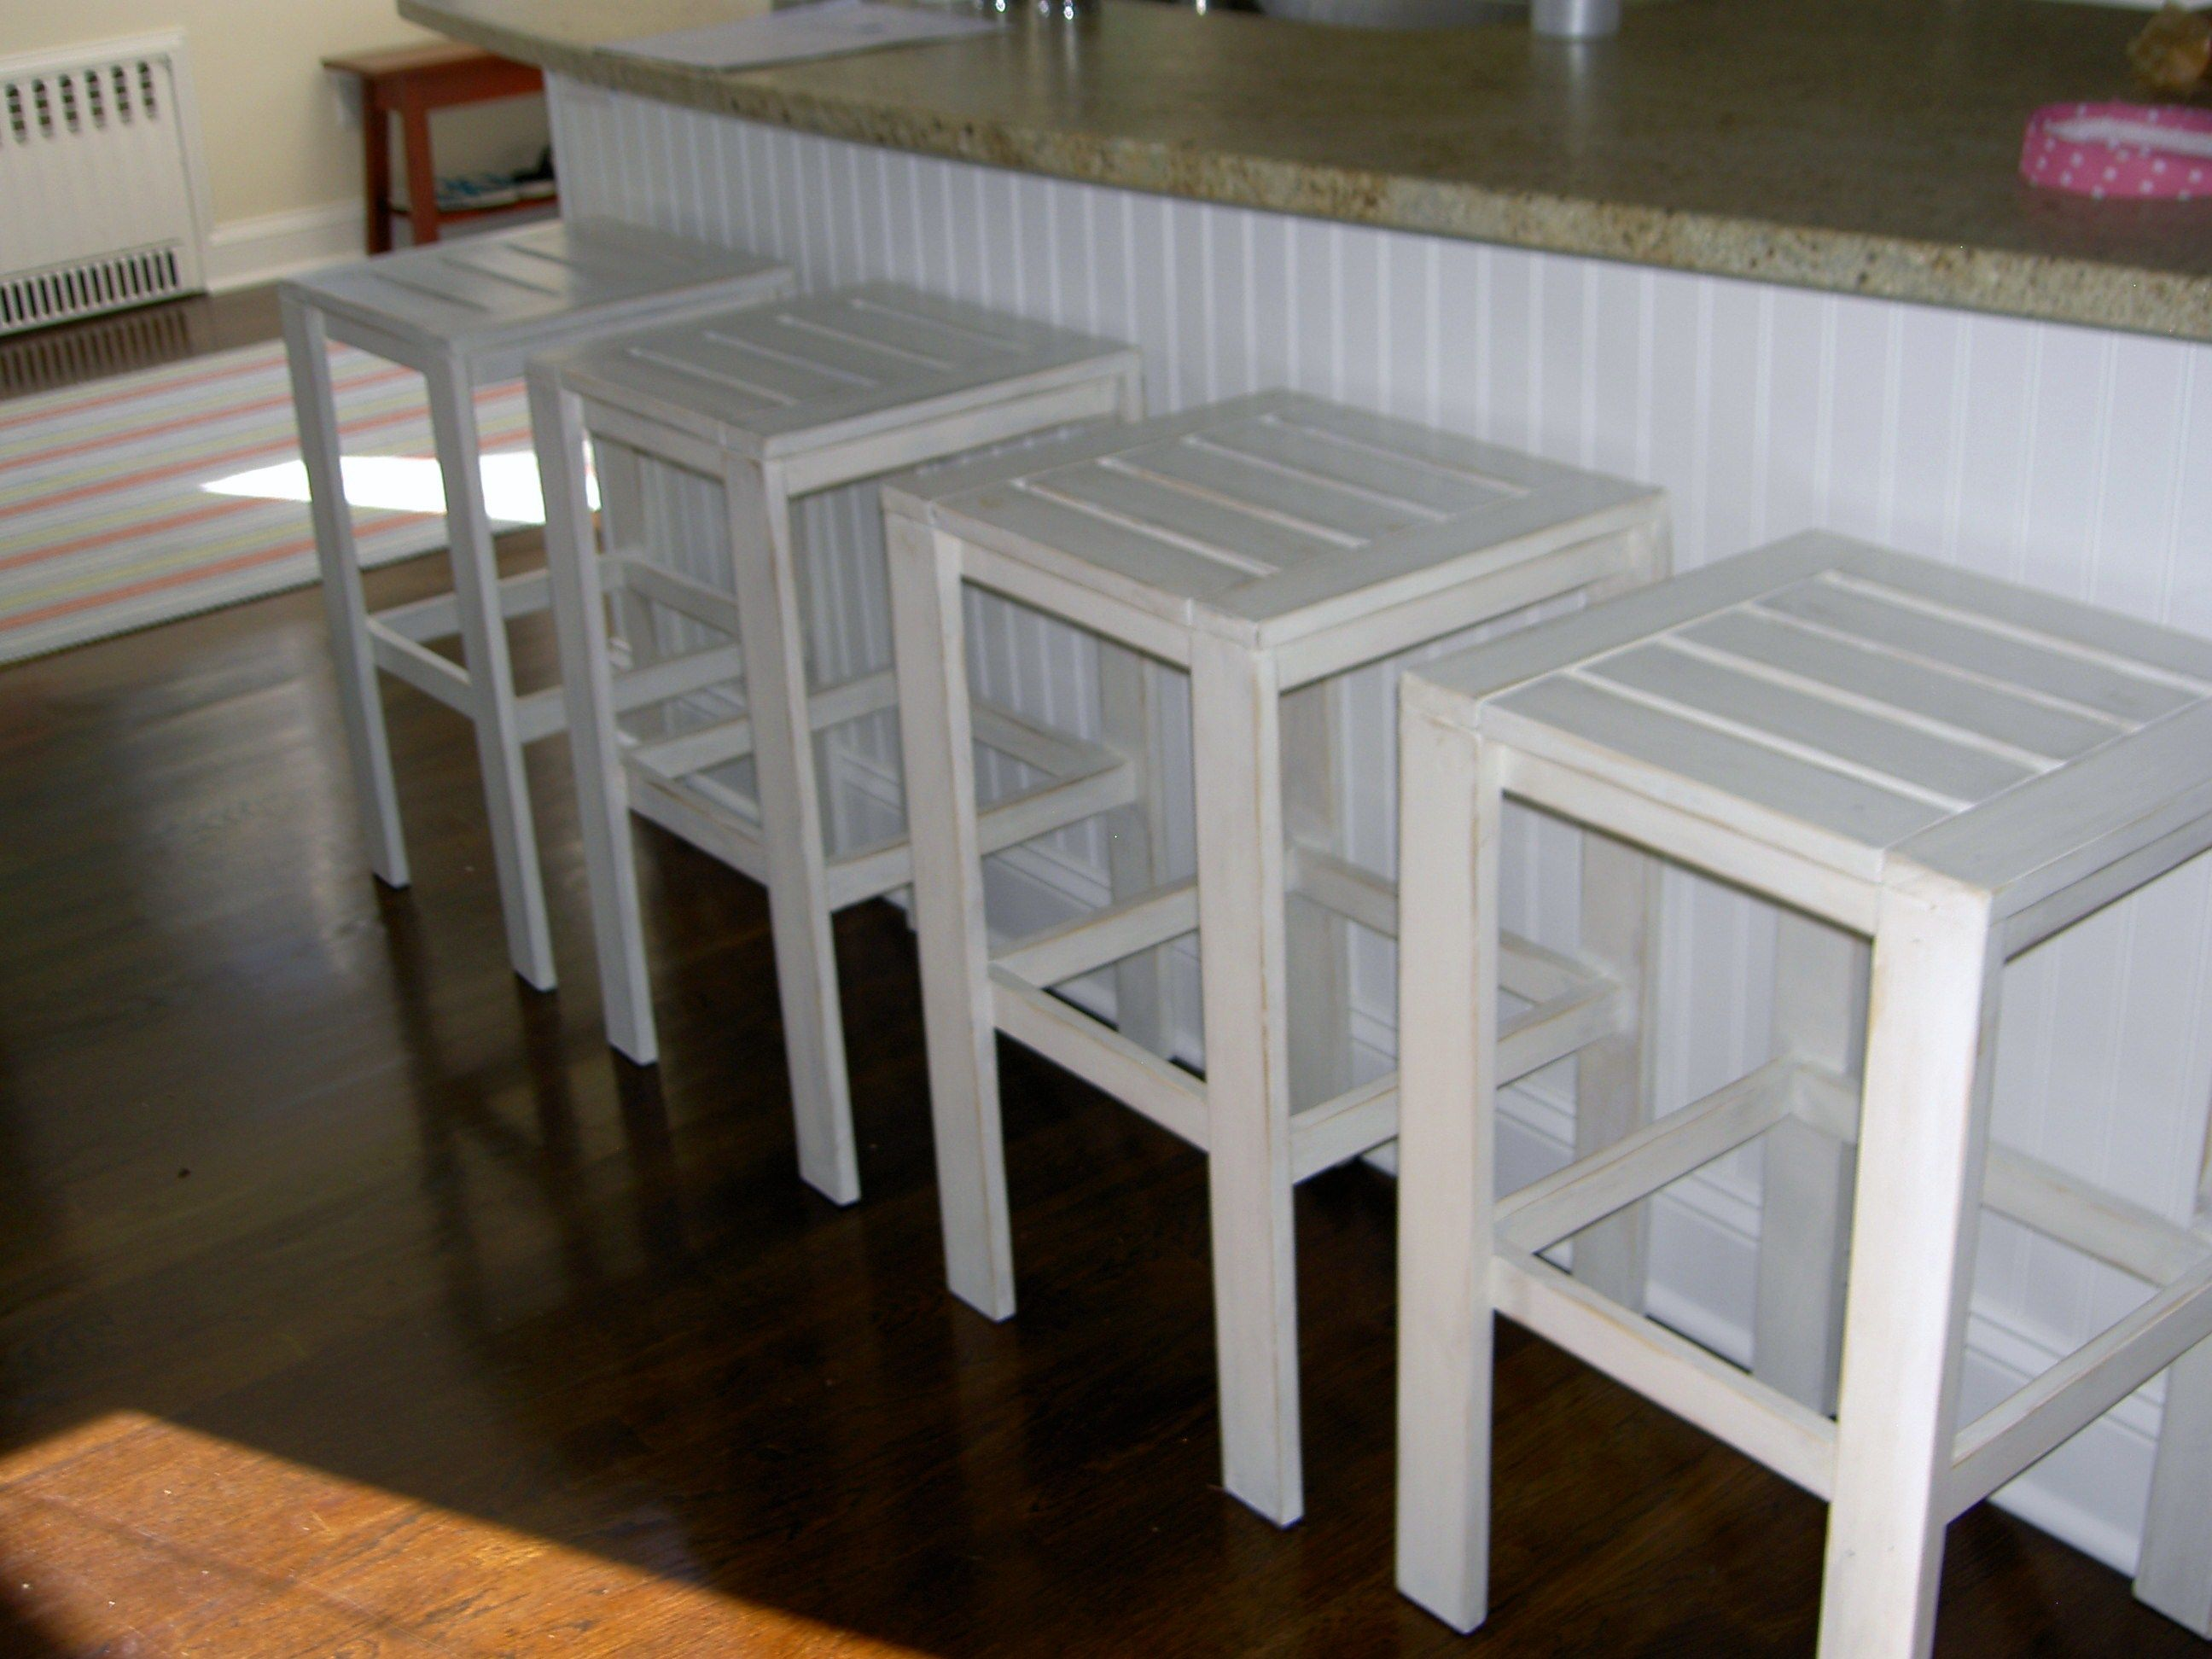 Ana White | Build a Simple Modern Bar Stools | Free and Easy DIY ...